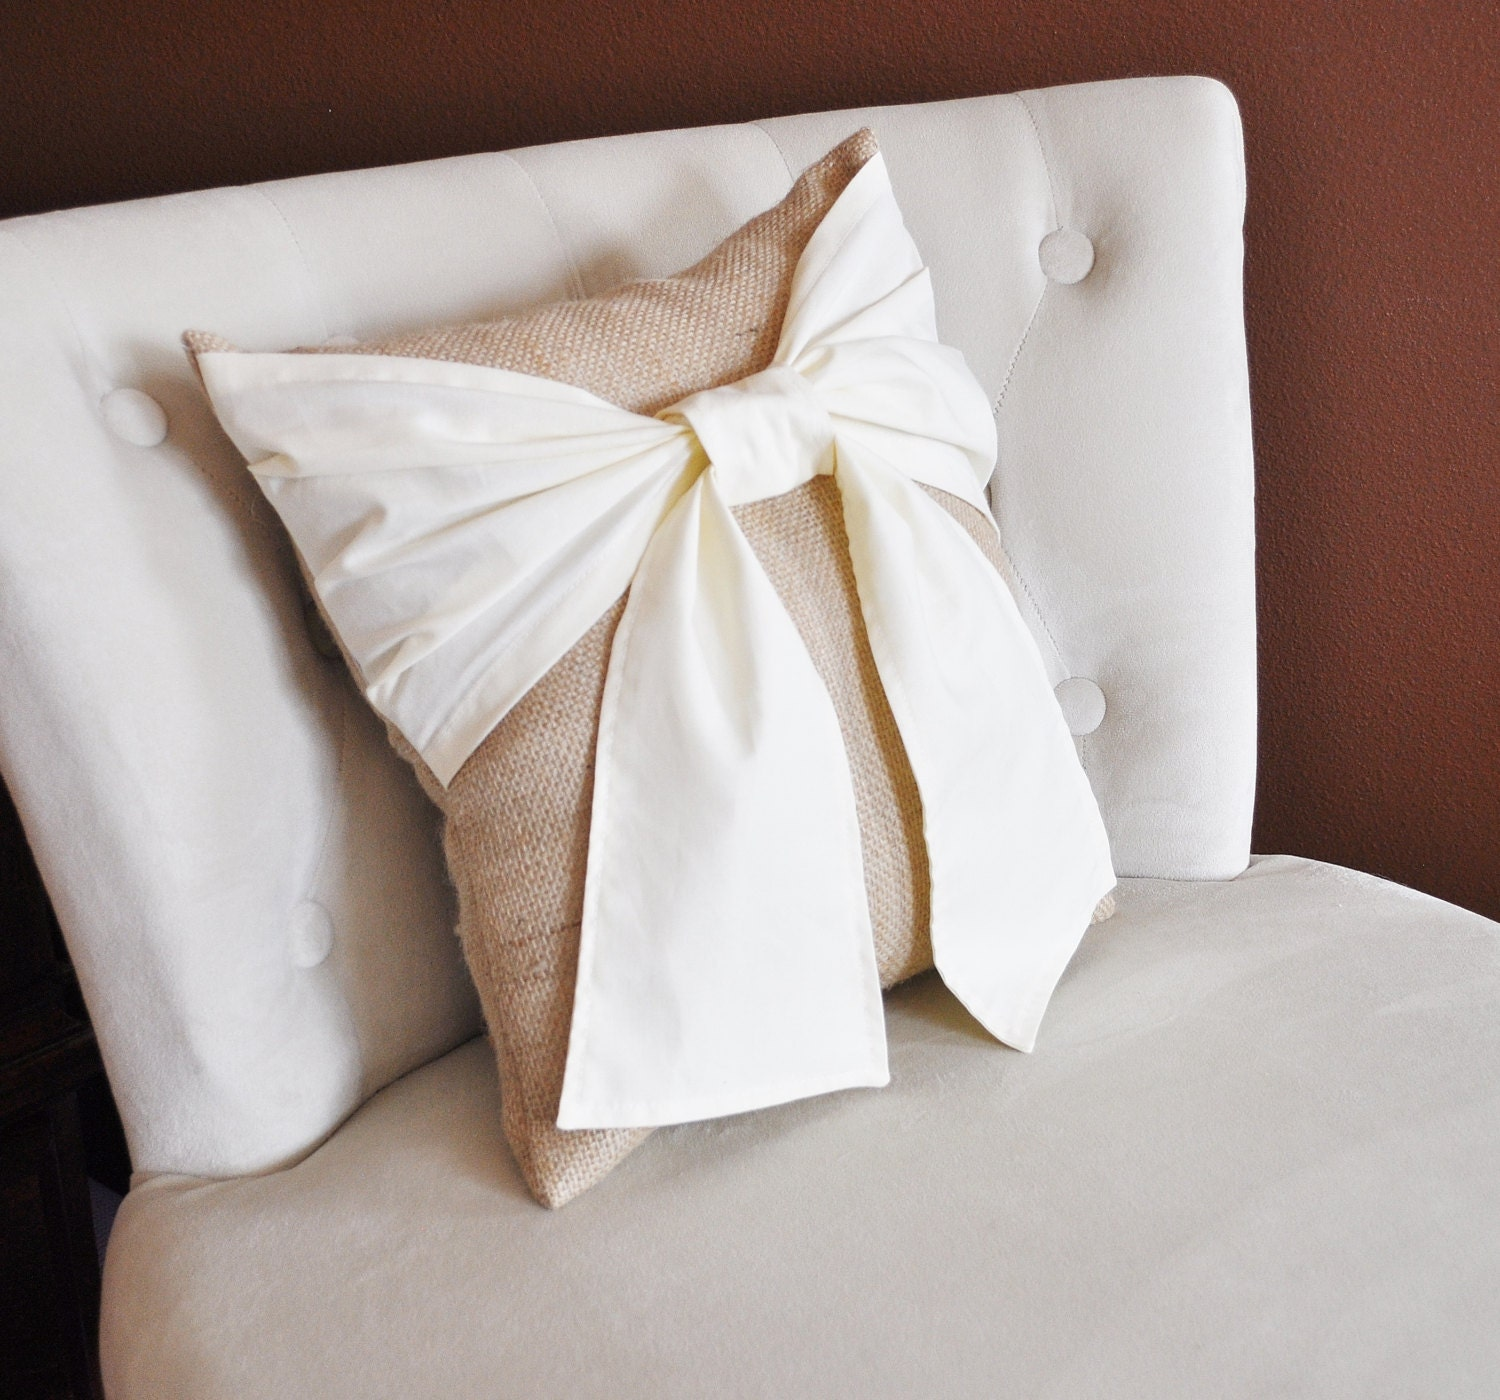 Decorative Pillows Etsy : Throw Pillow Cream Bow on Burlap Rustic Pillow 14x14 Rustic